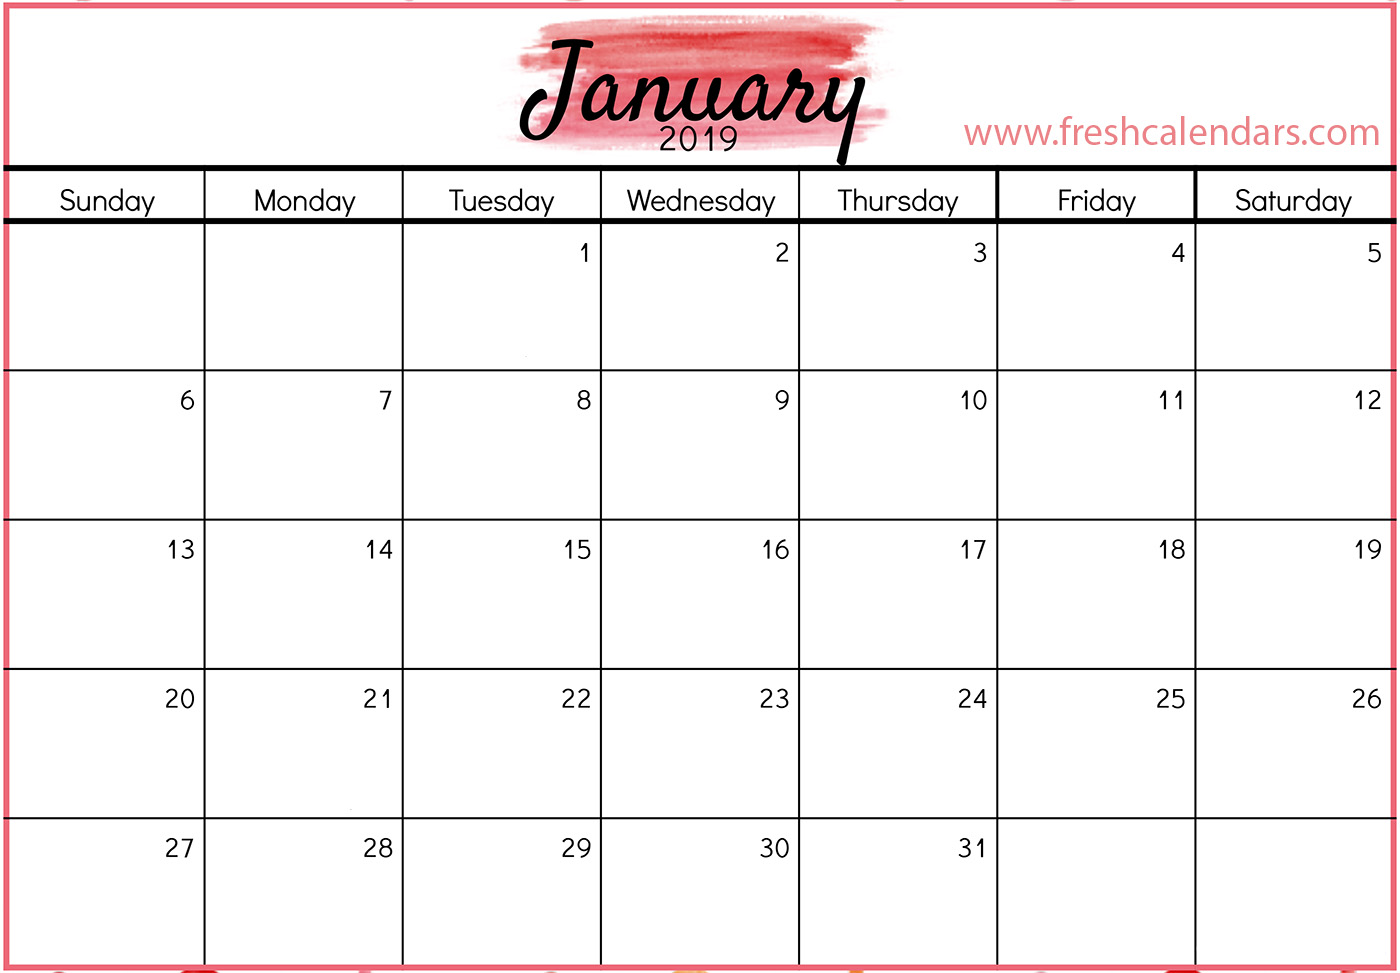 January 2019 Calendar Red Template